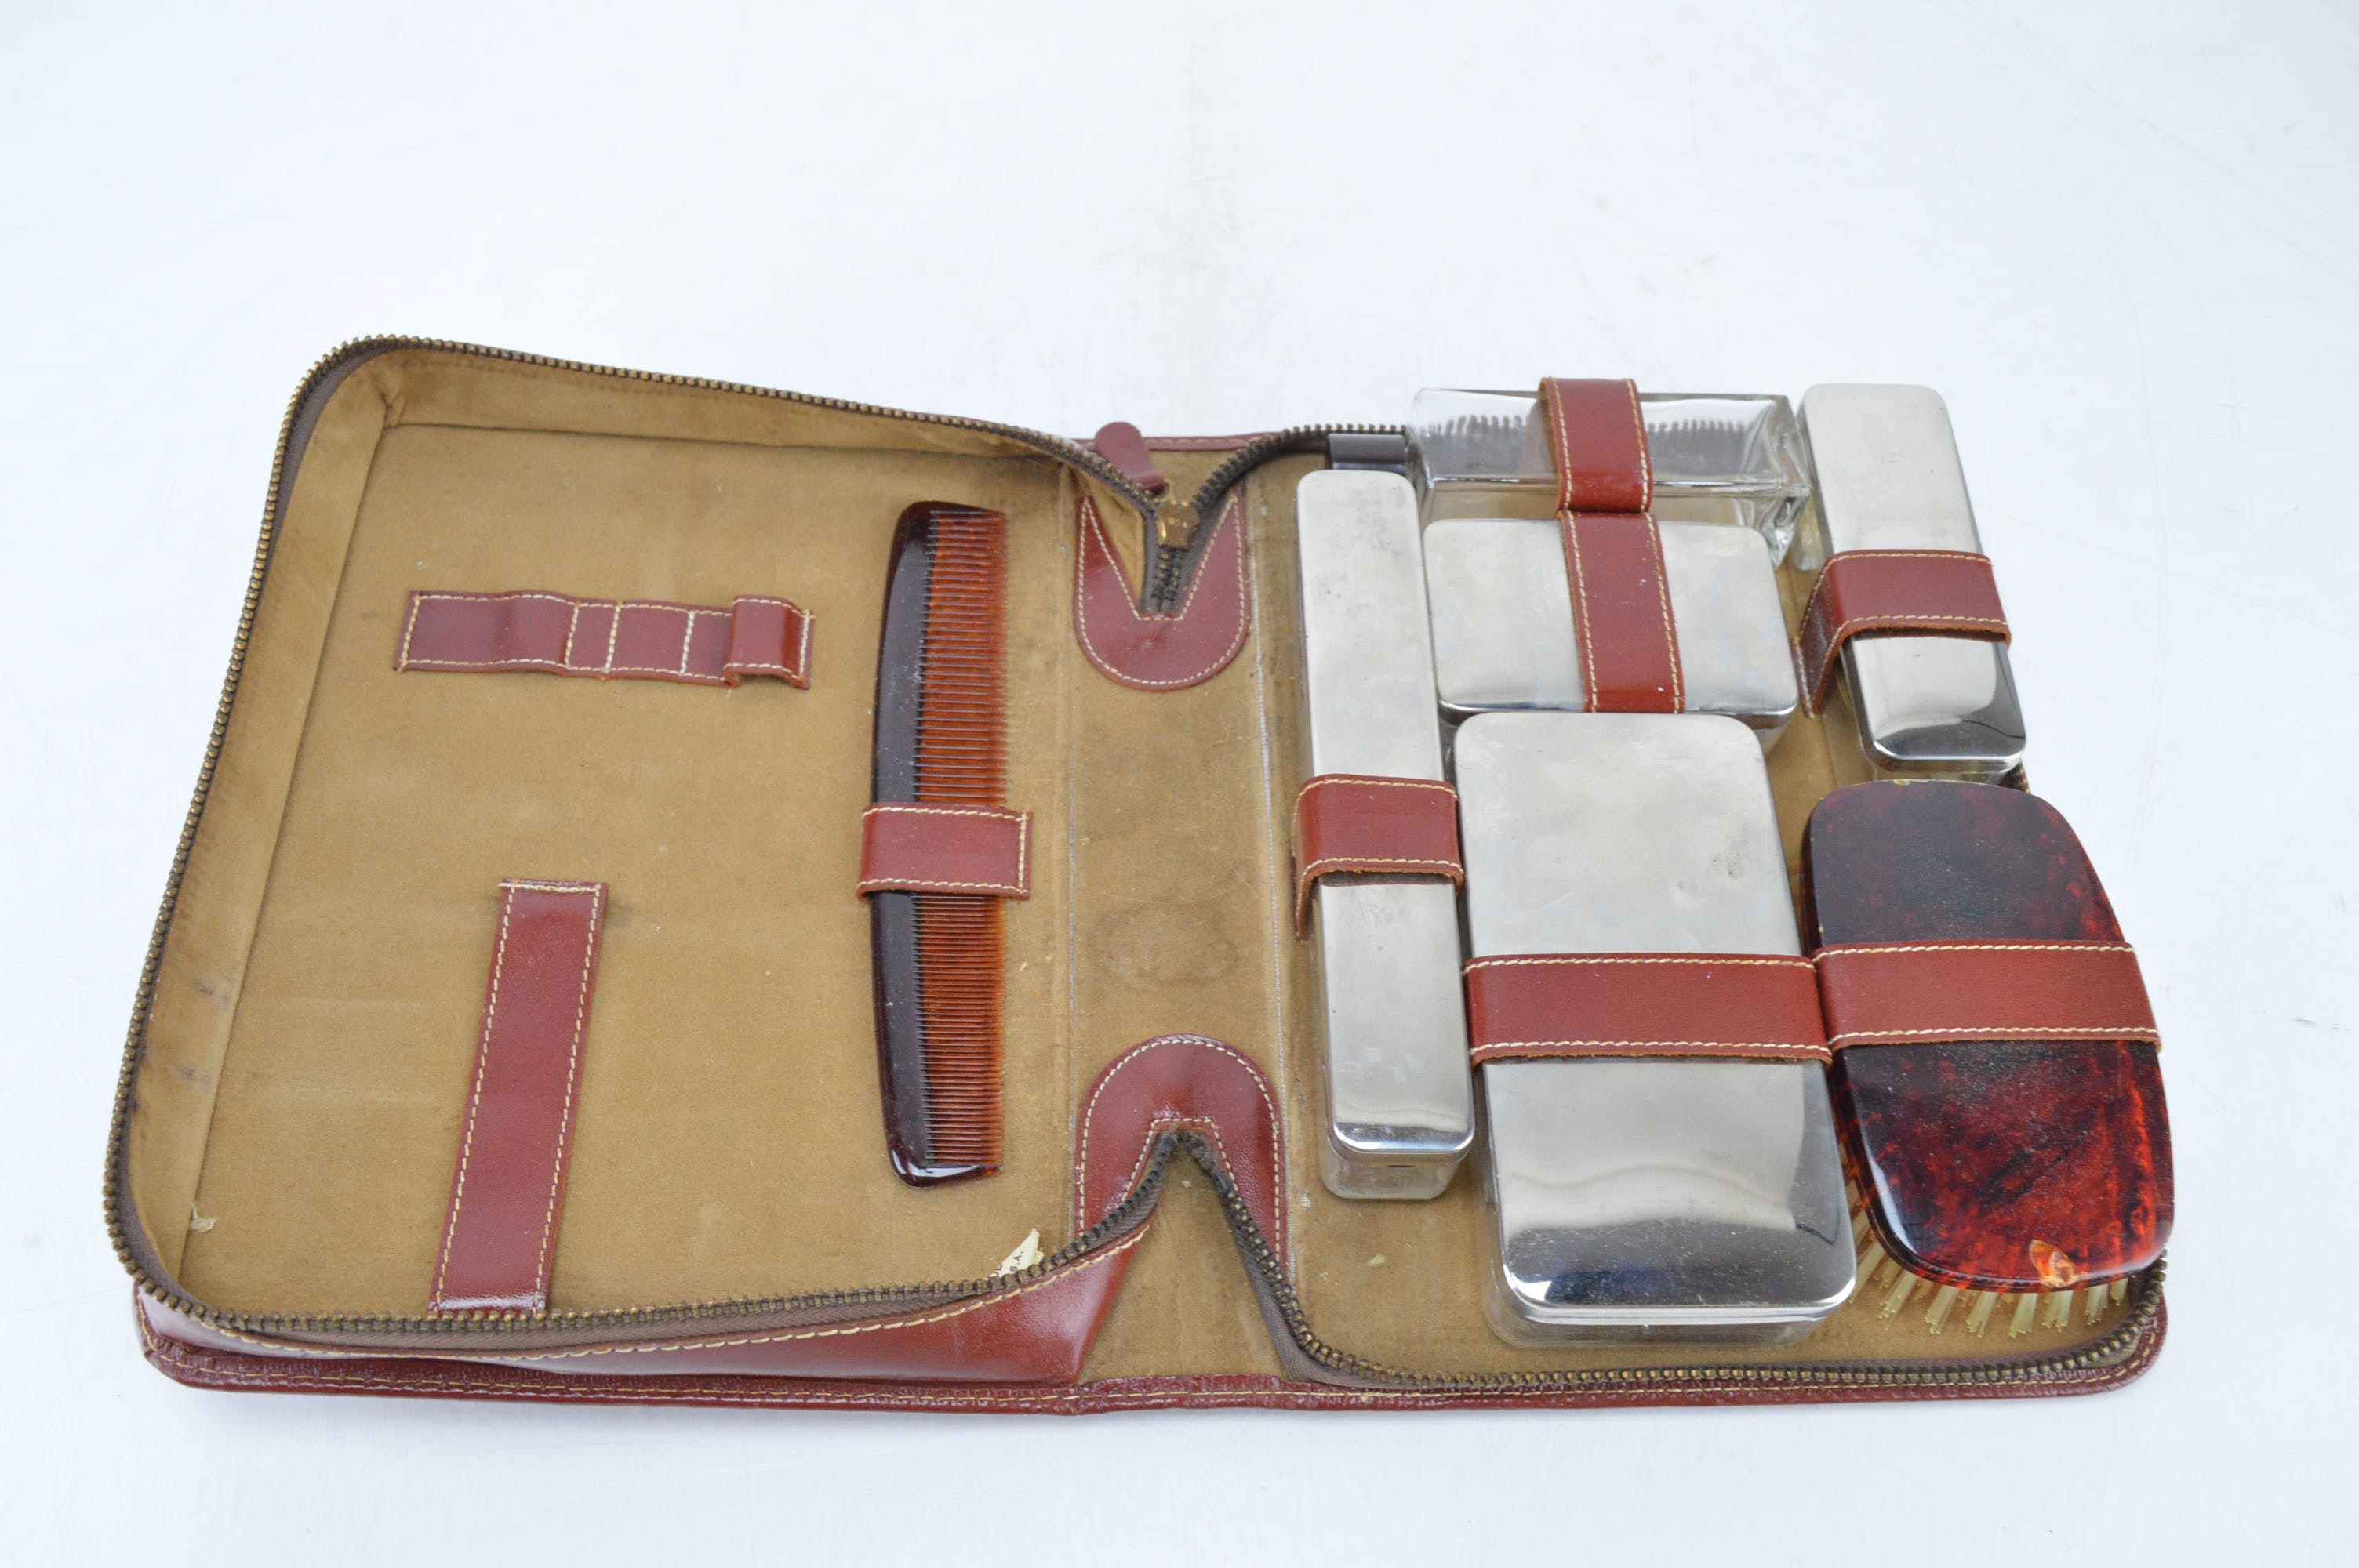 Vintage Men's Toiletry Kit